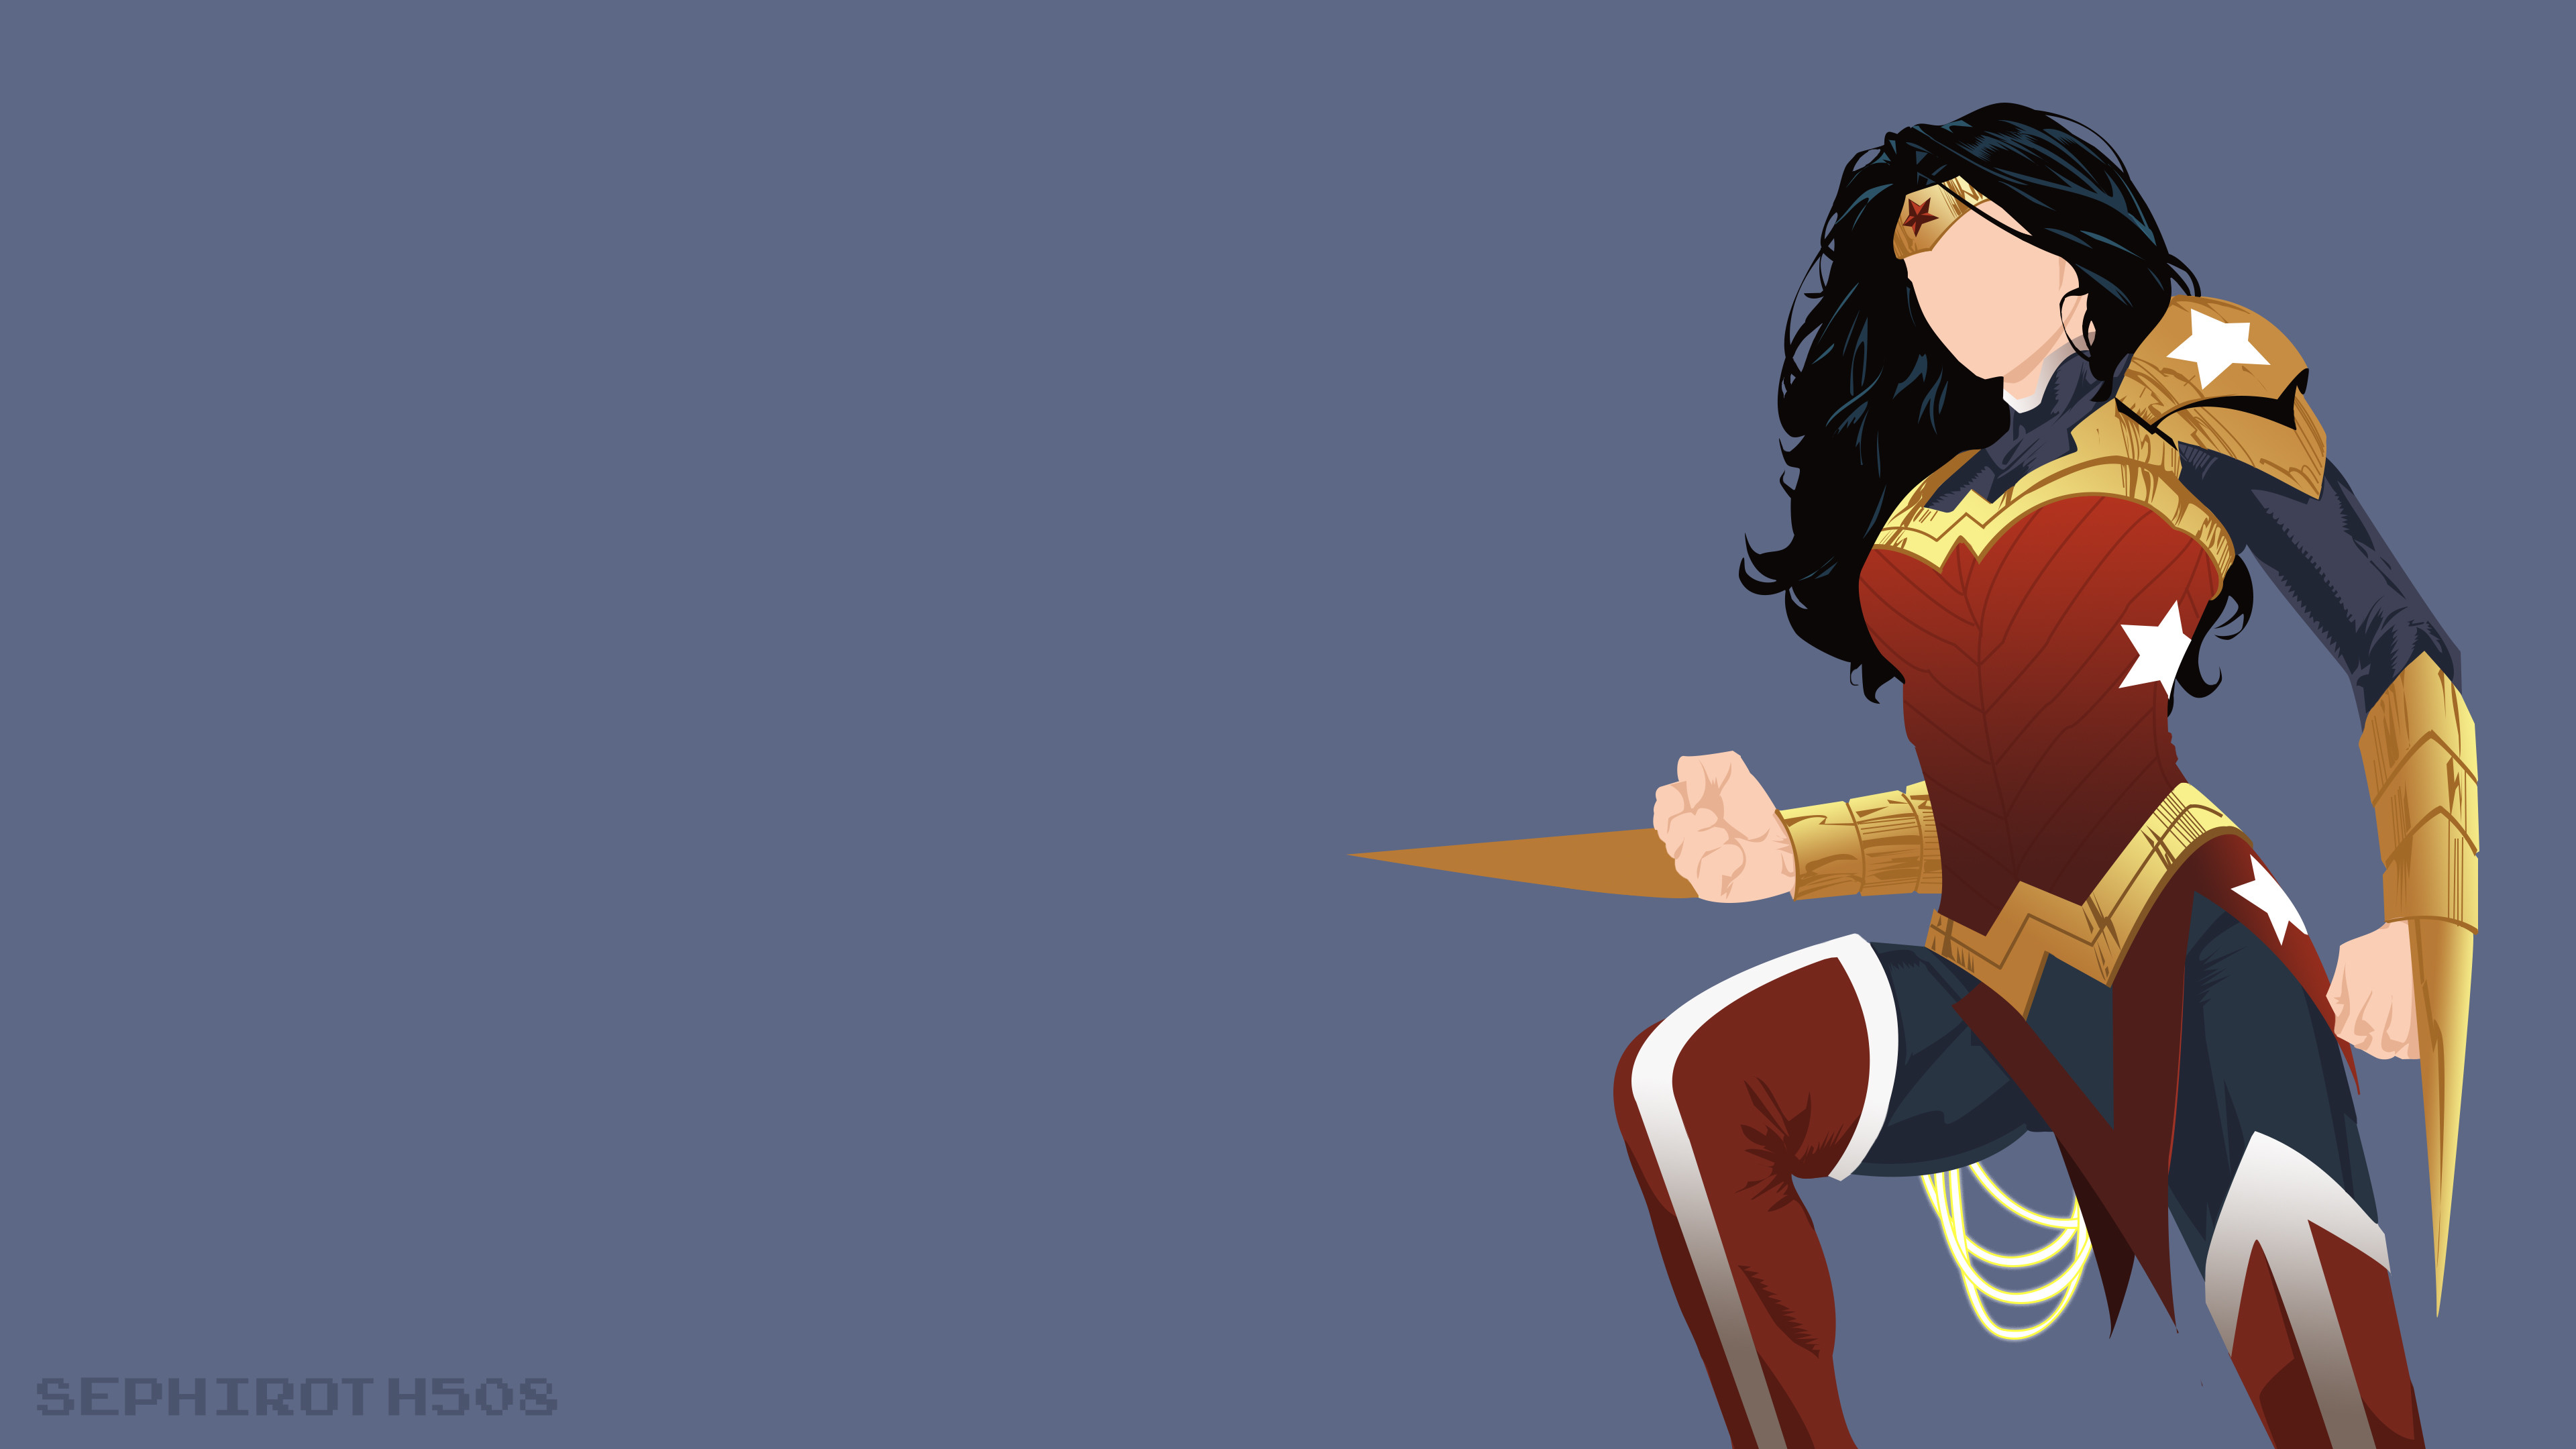 3840x2160 Wonder Woman Minimalist